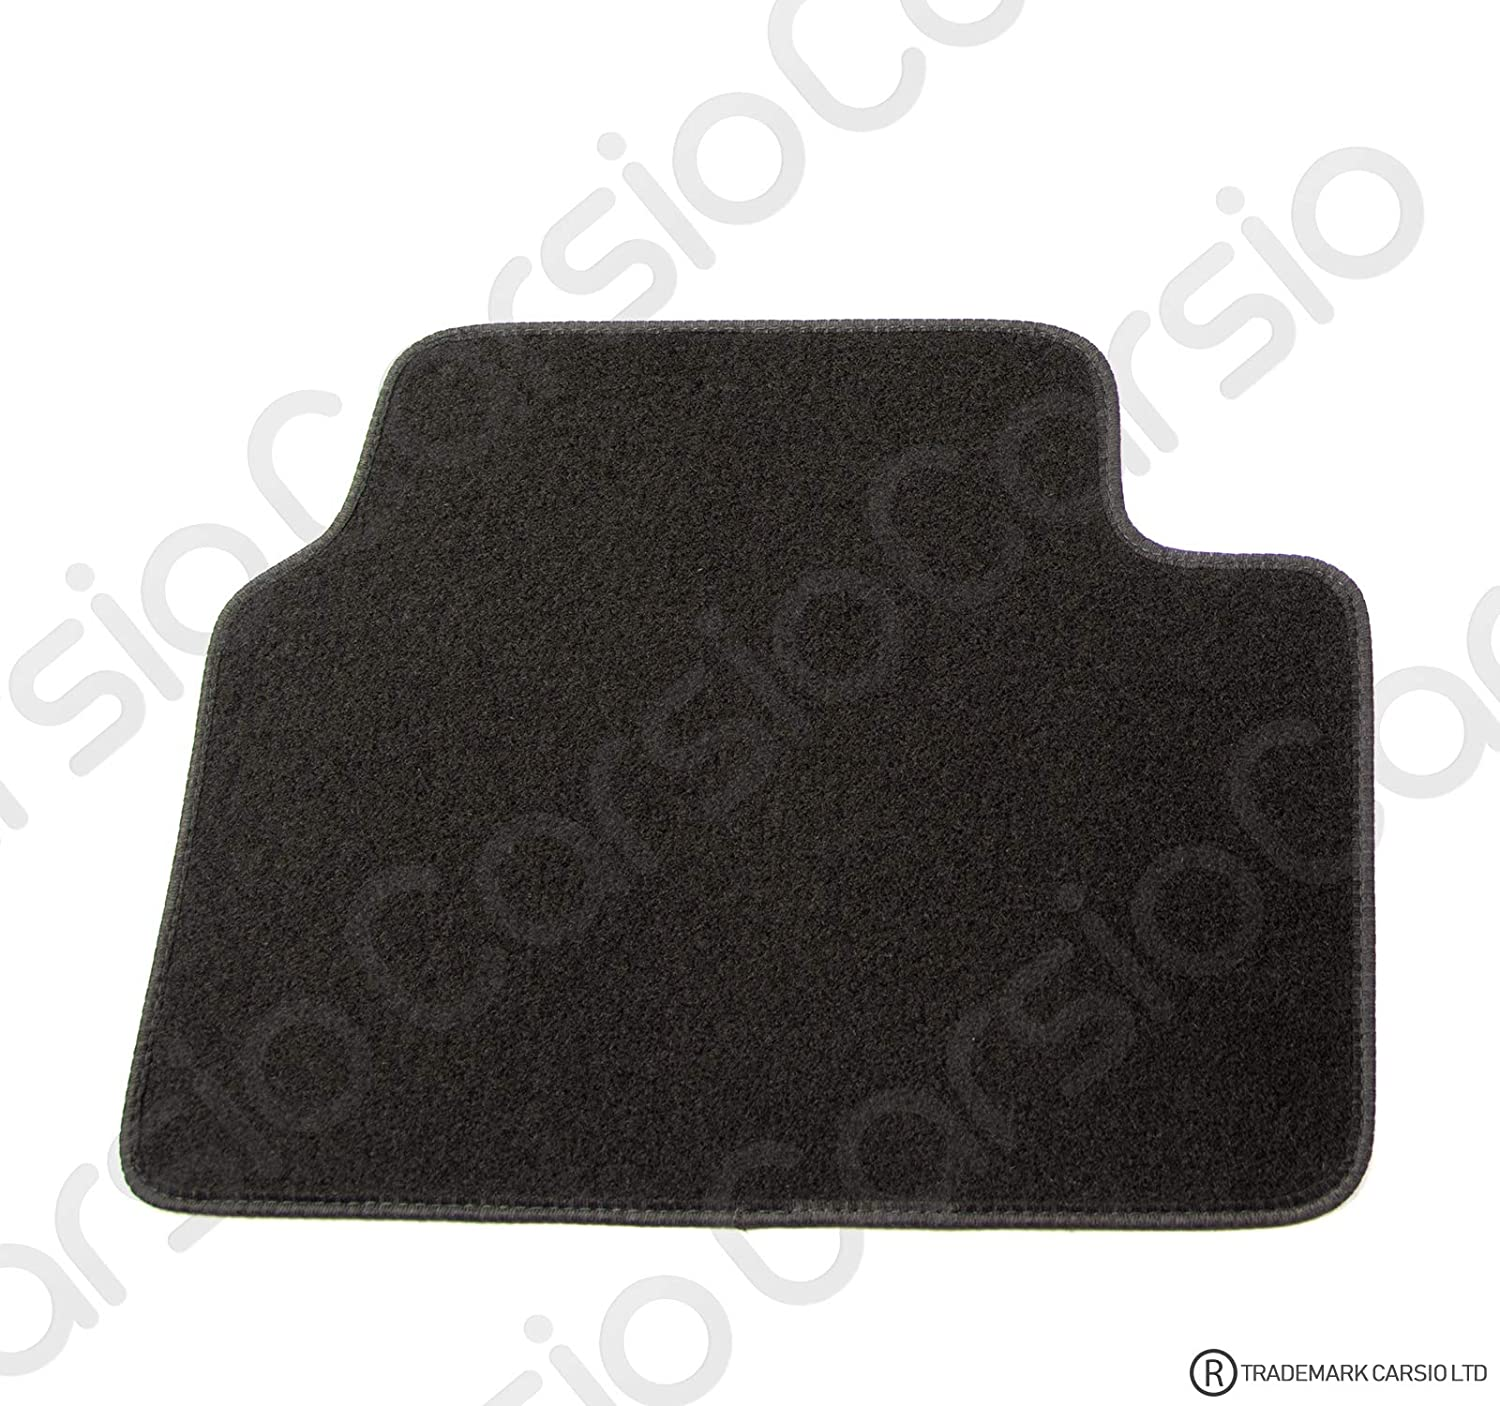 Carsio Tailored Black Carpet Car Mats for Vectra C//Signum 2003 to 2008-4 Piece Set With 4 Clips